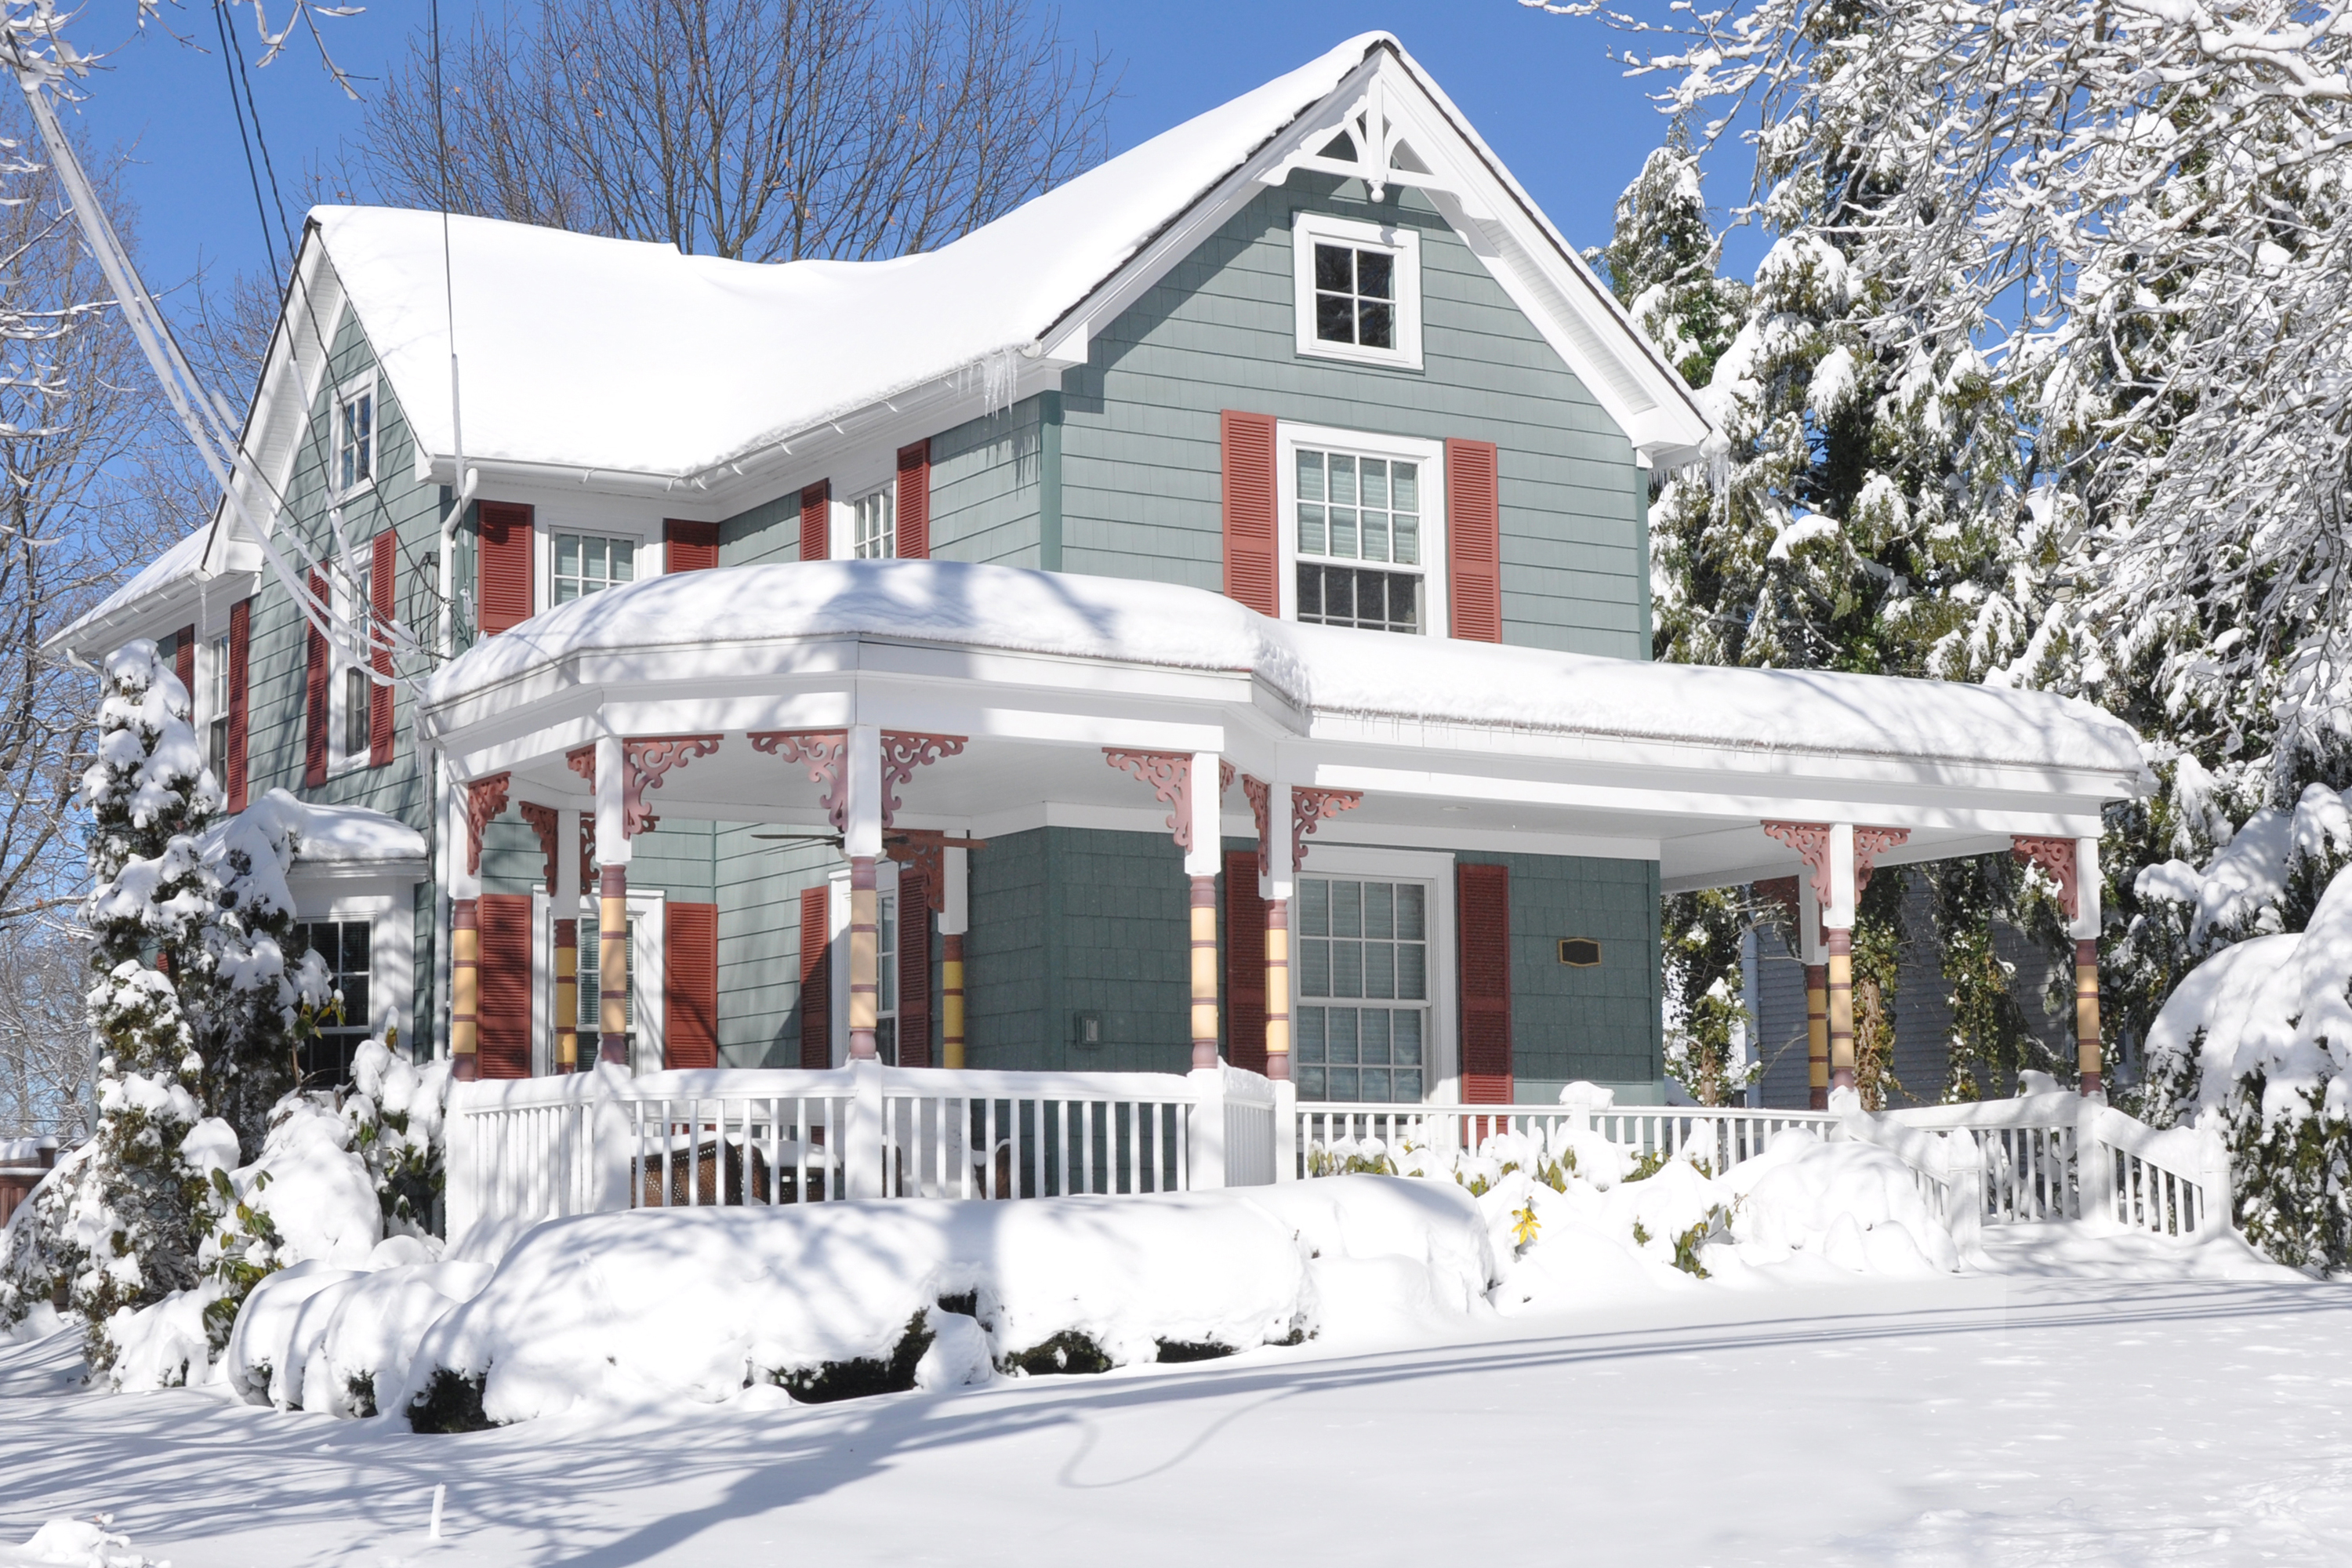 Snow covered suburban home.